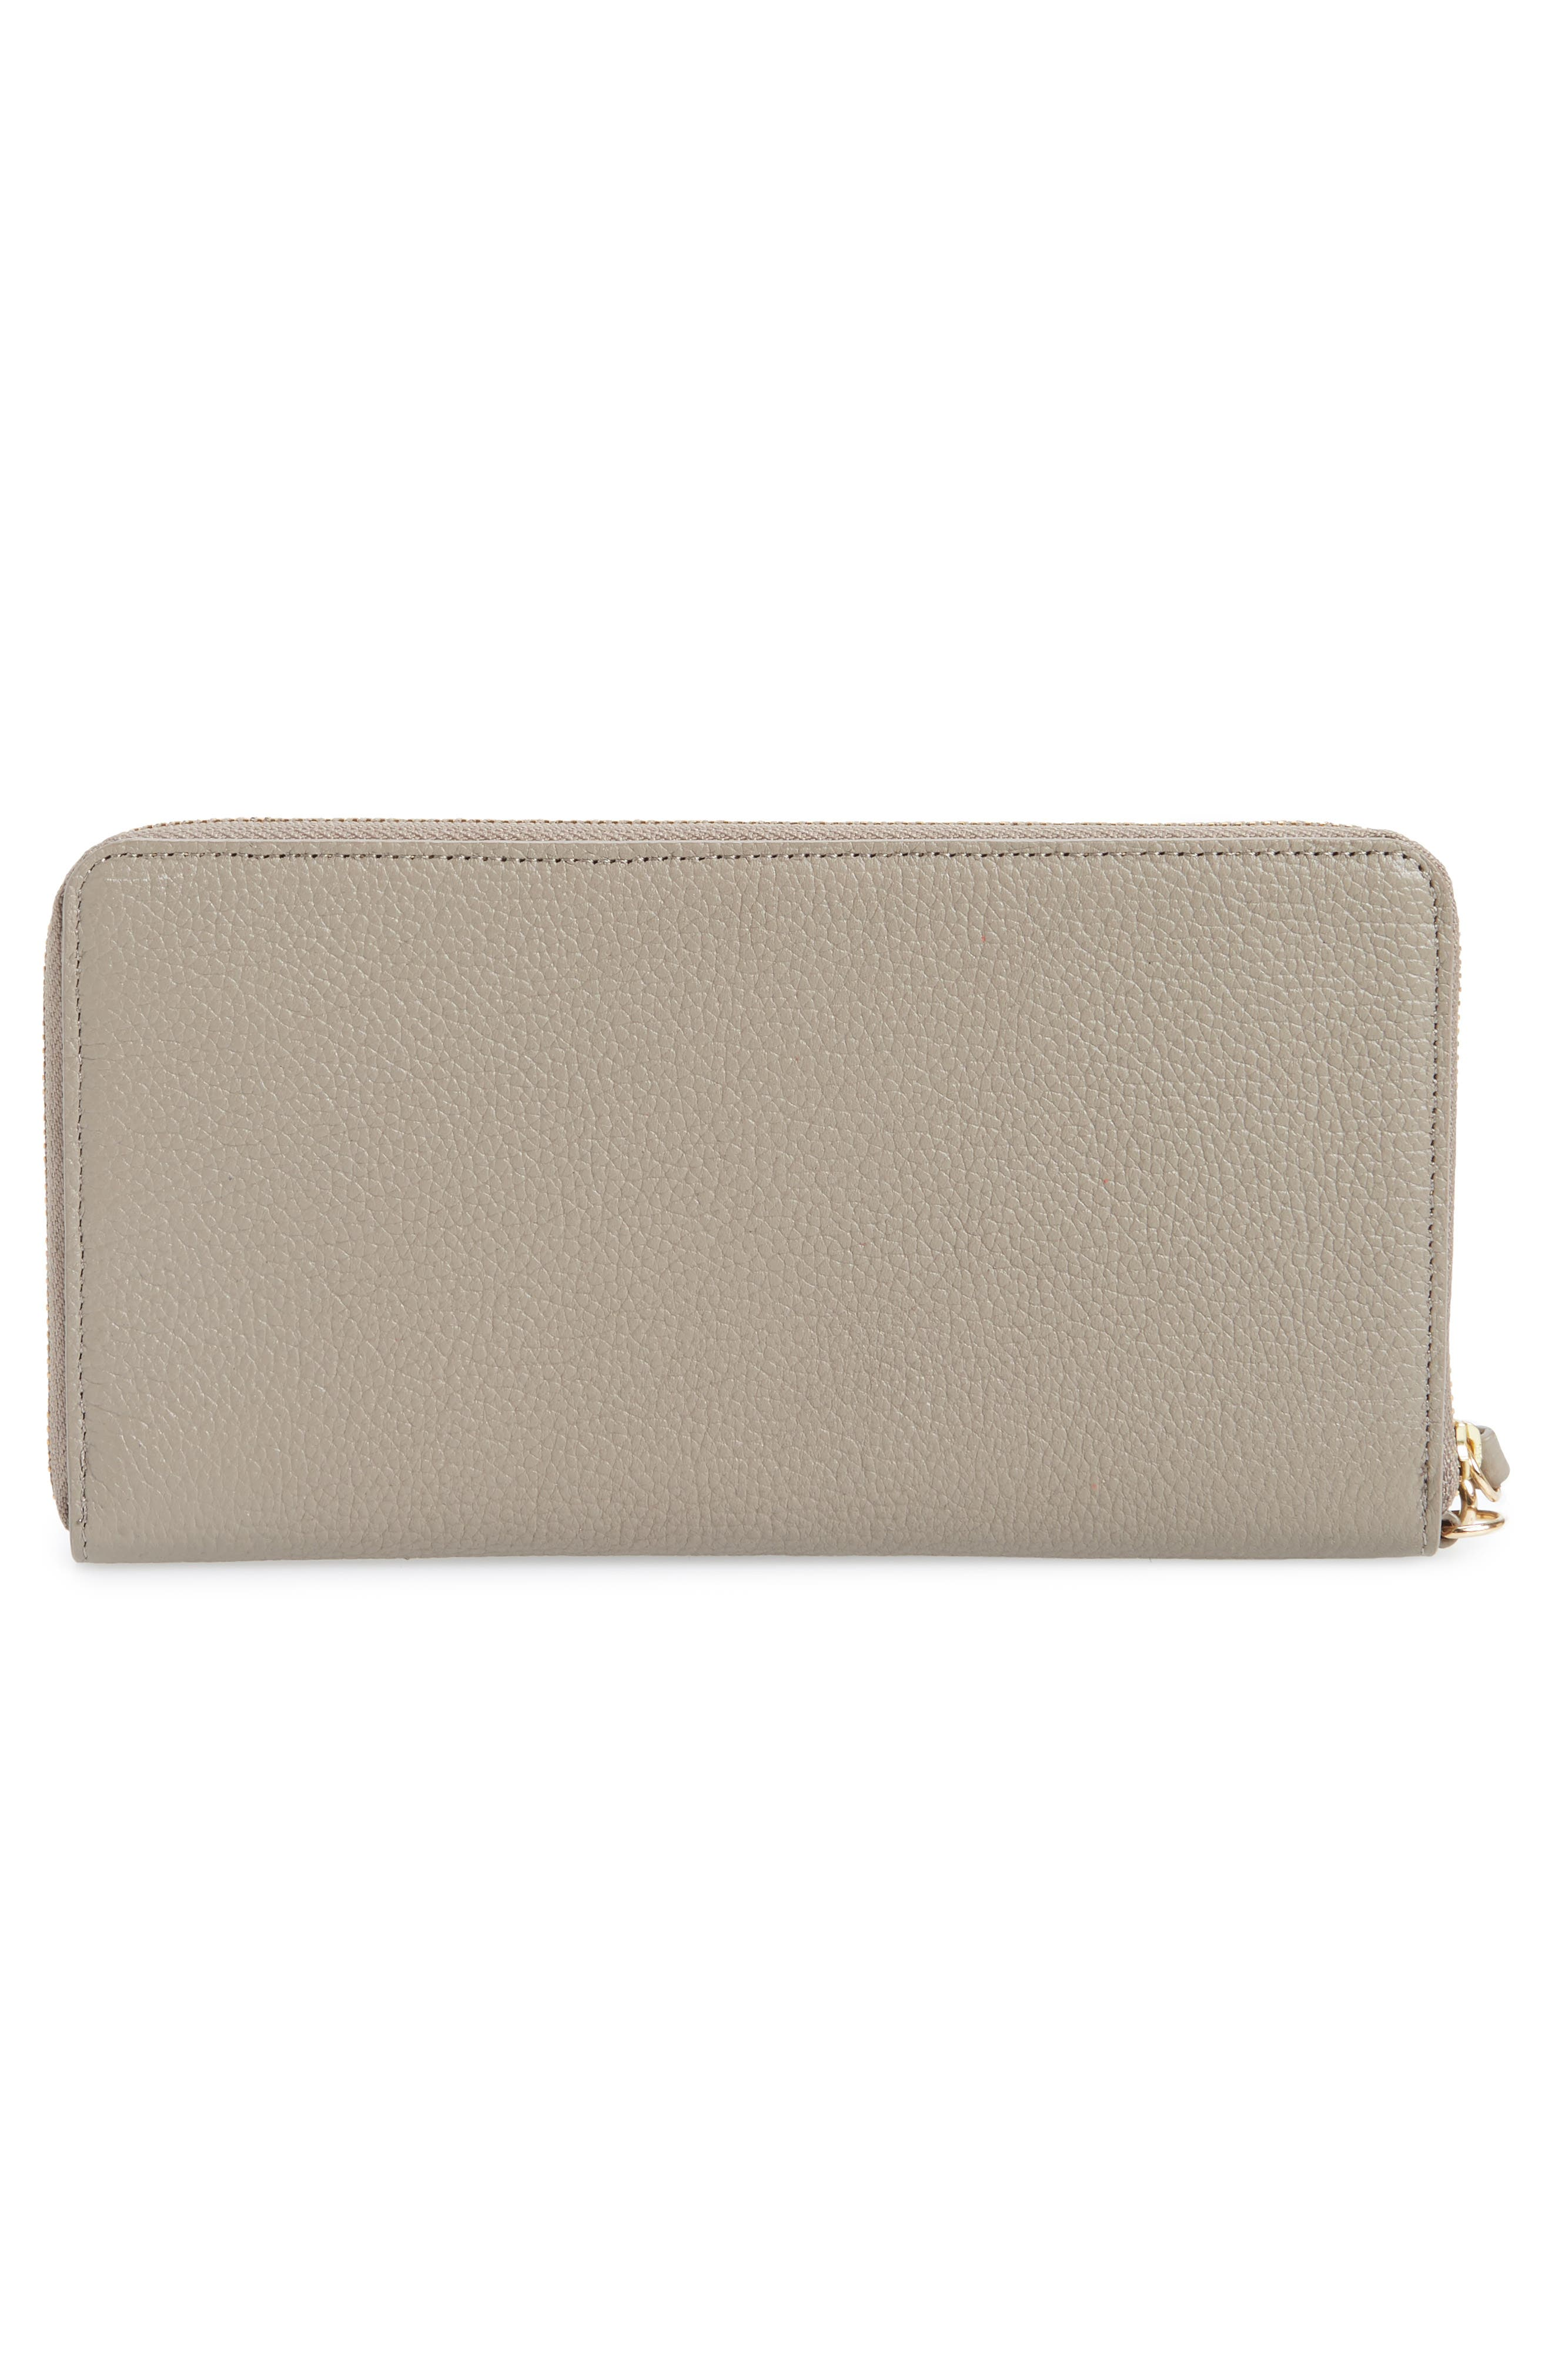 NORDSTROM, Zip Around Leather Continental Wallet, Alternate thumbnail 3, color, GREY TAUPE